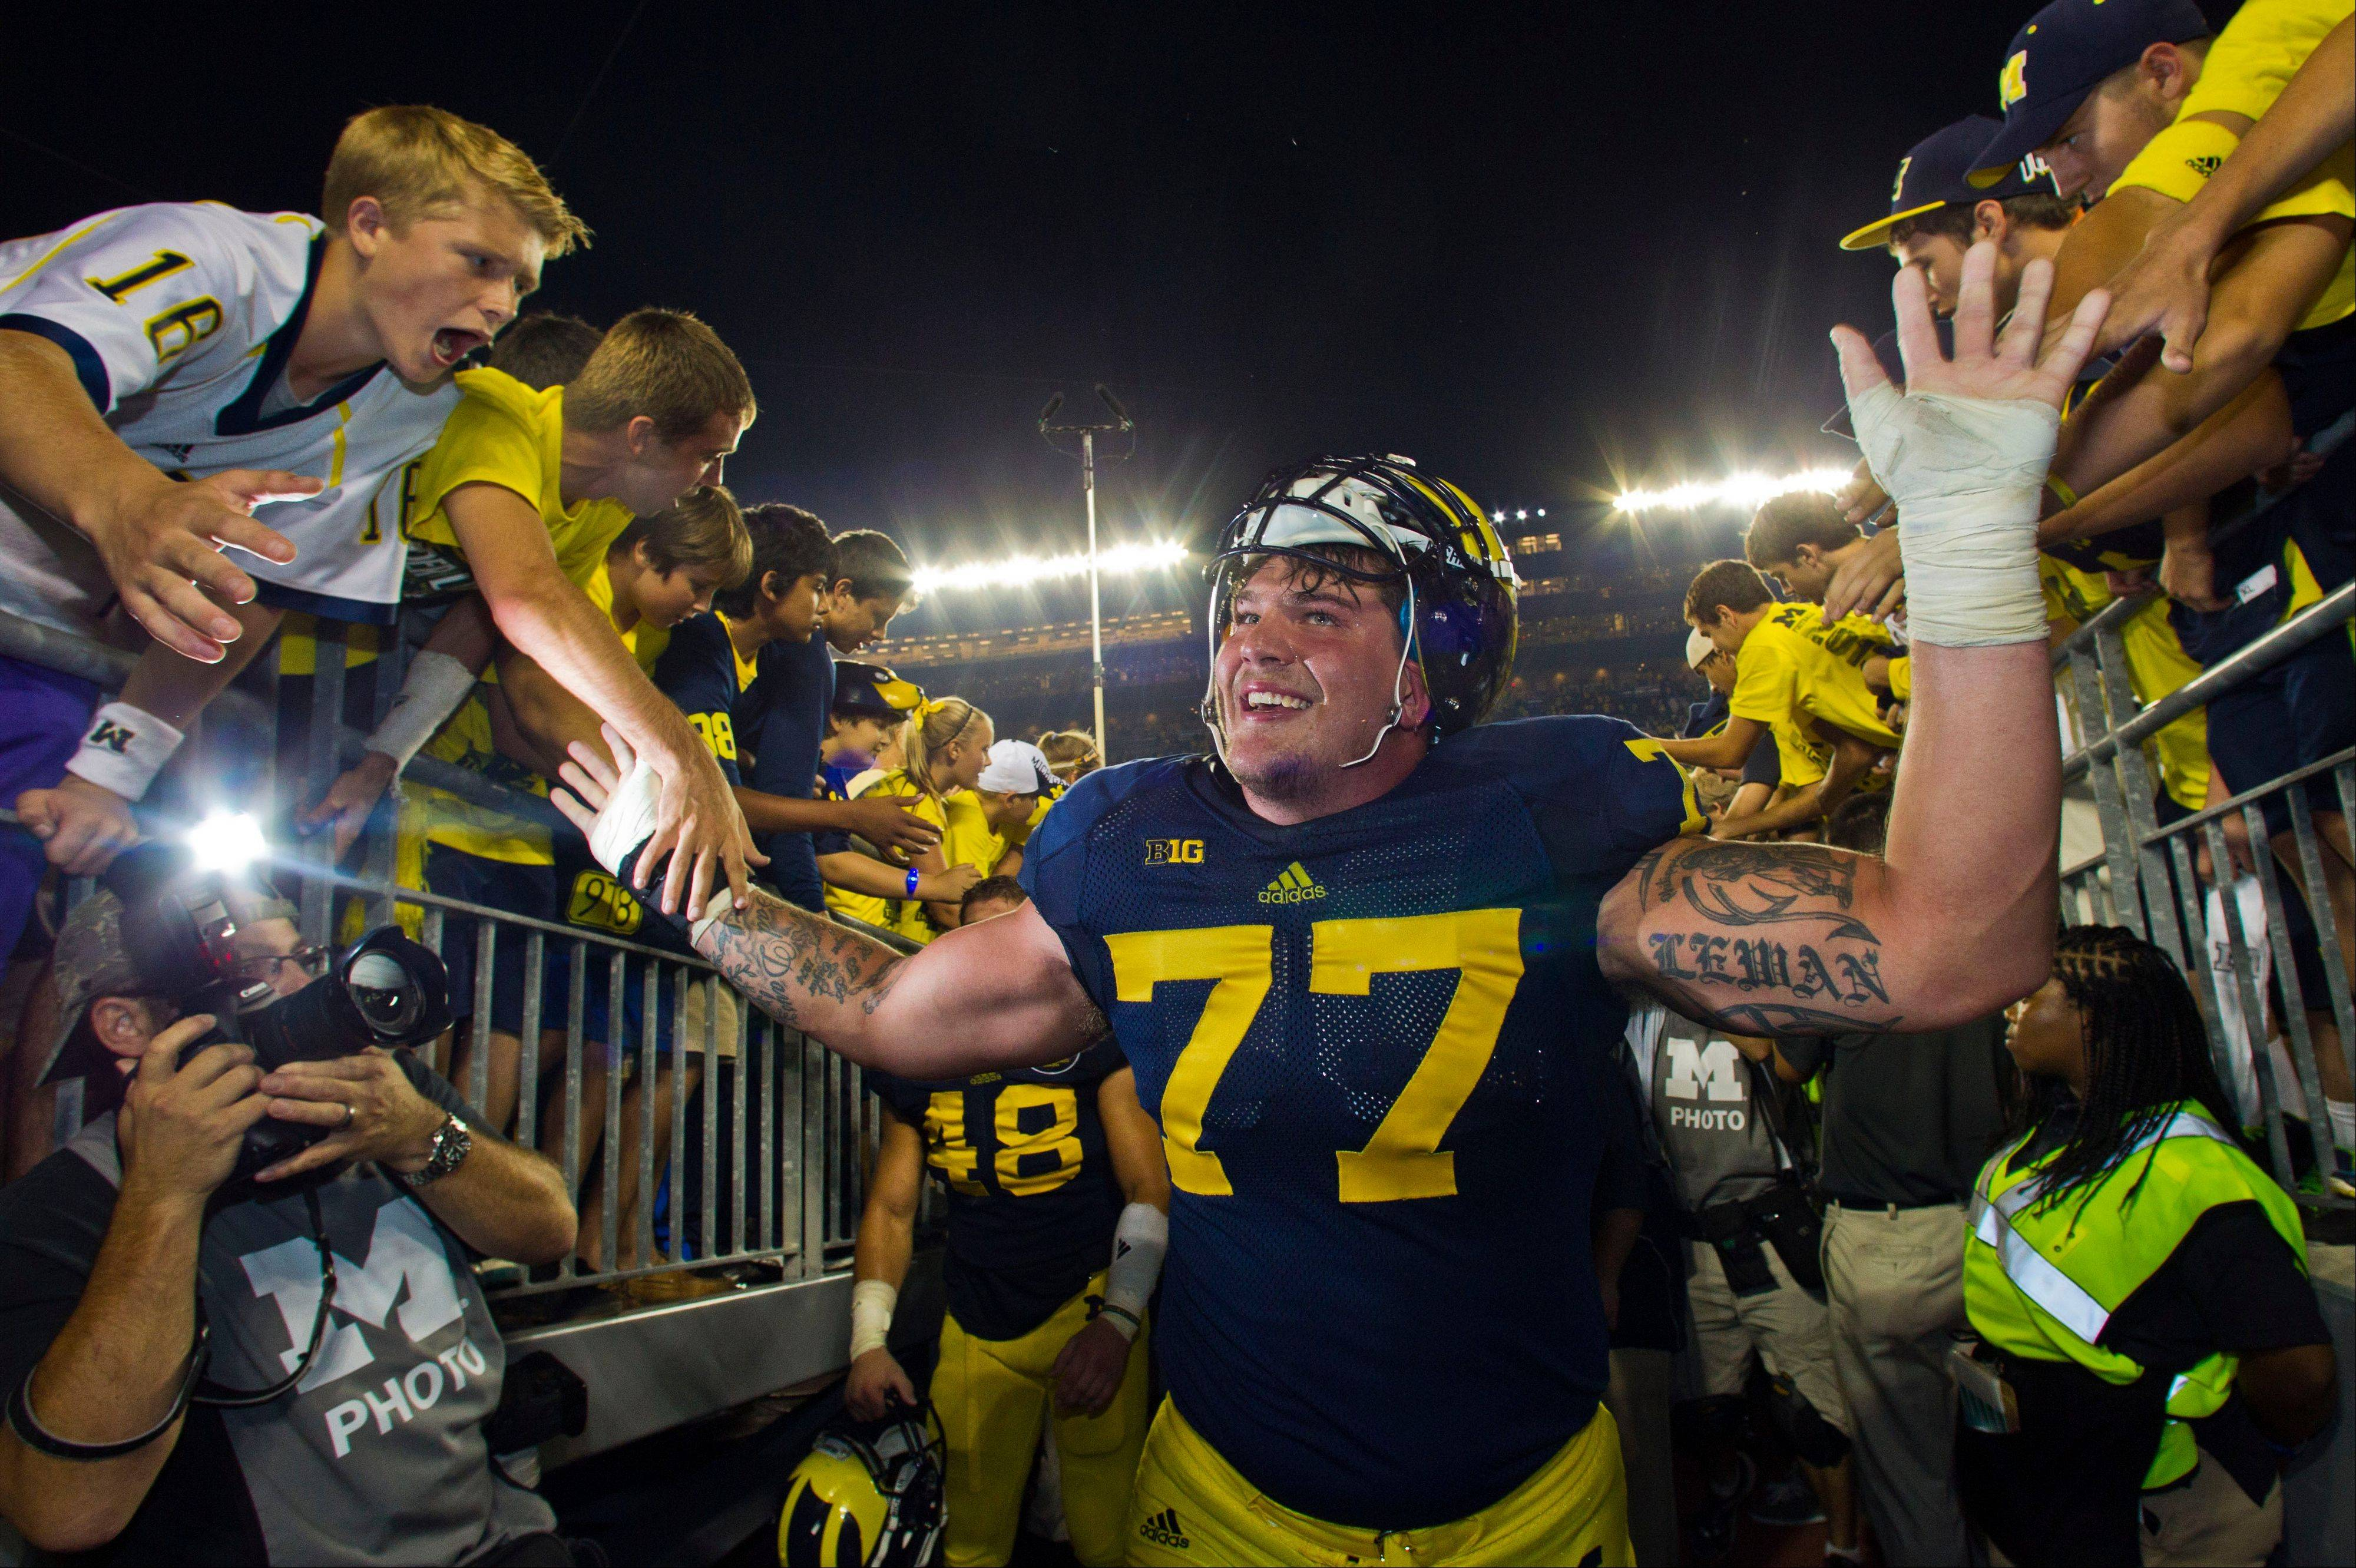 Michigan offensive lineman Taylor Lewan, with tears in his eyes, gives high fives to young fans after a win over Notre Dame on Saturday in Ann Arbor, Mich.